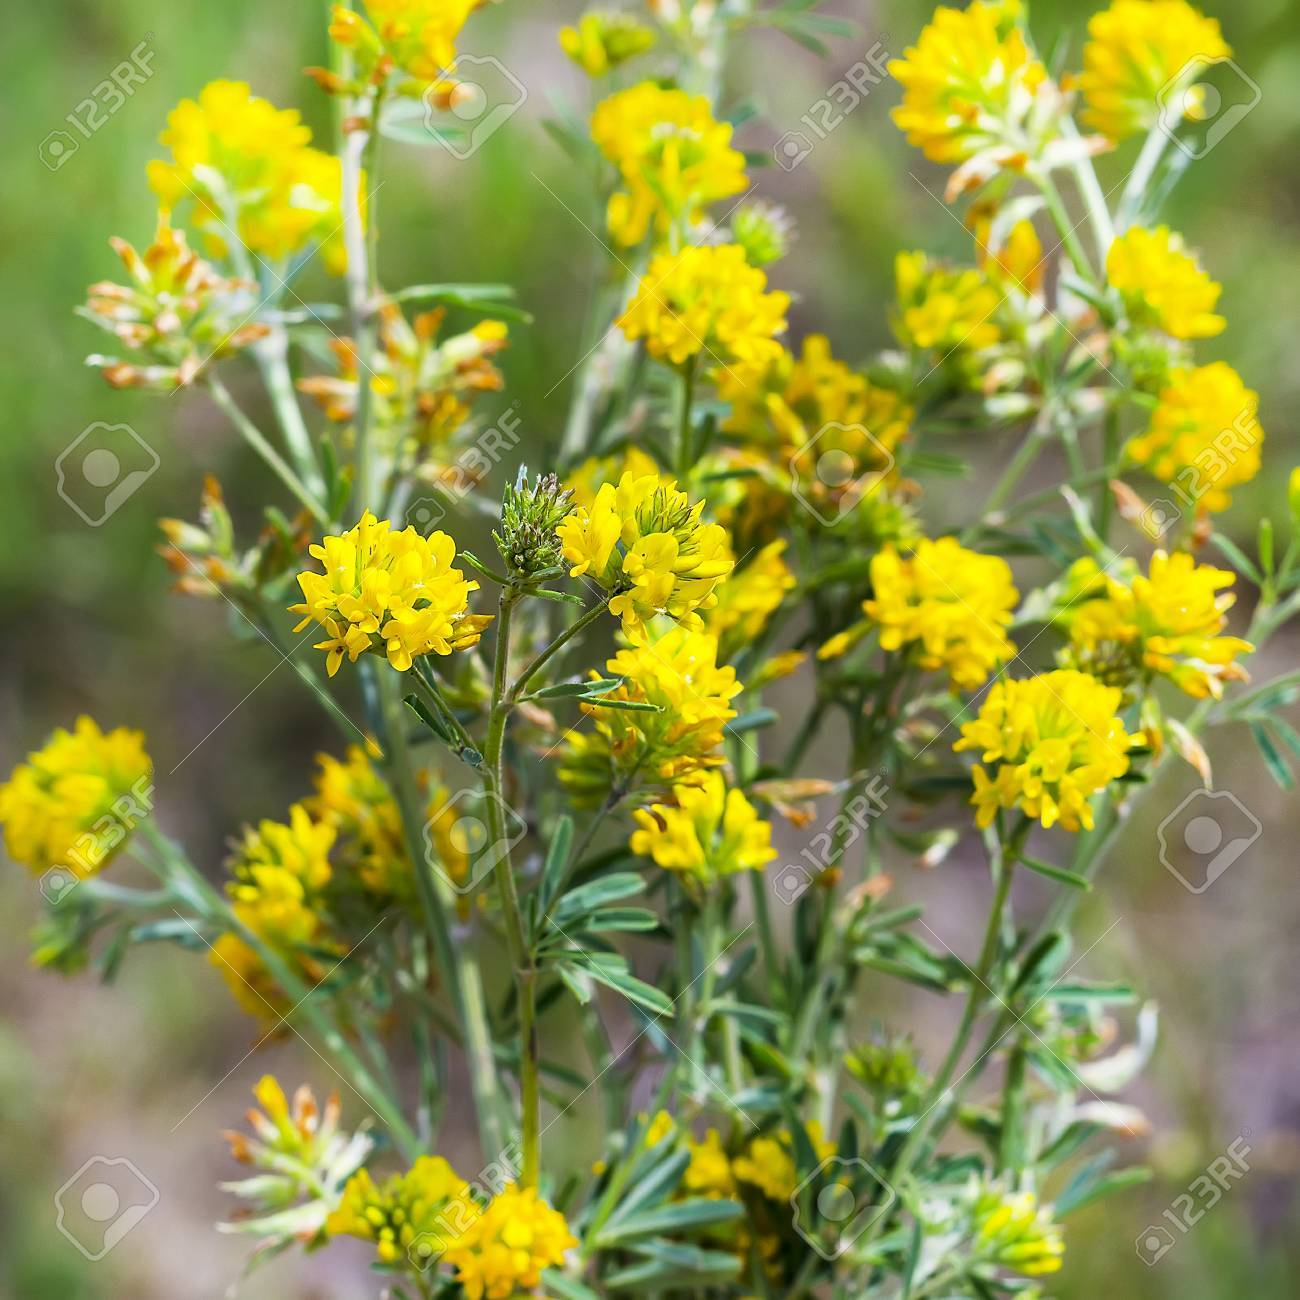 Sickle Alfalfa Or Yellow Latin Name Medicago Falcata Is A Stock